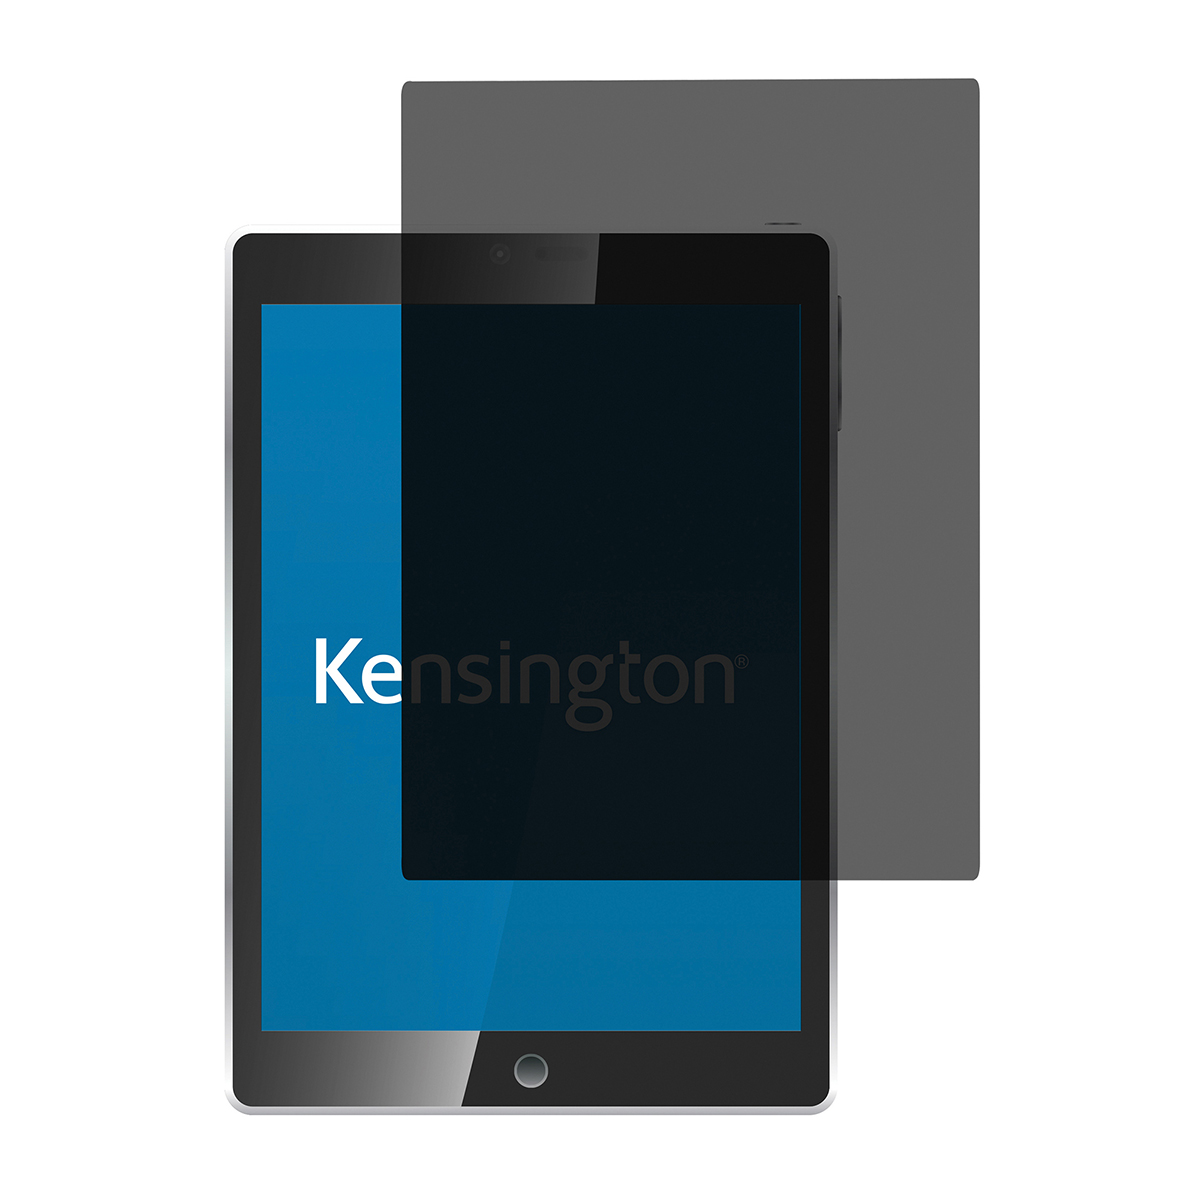 Kensington 626405 Privacy Filter 2 Way Adhesive for iPad Pro 12.9 Inch 2017 Landscape